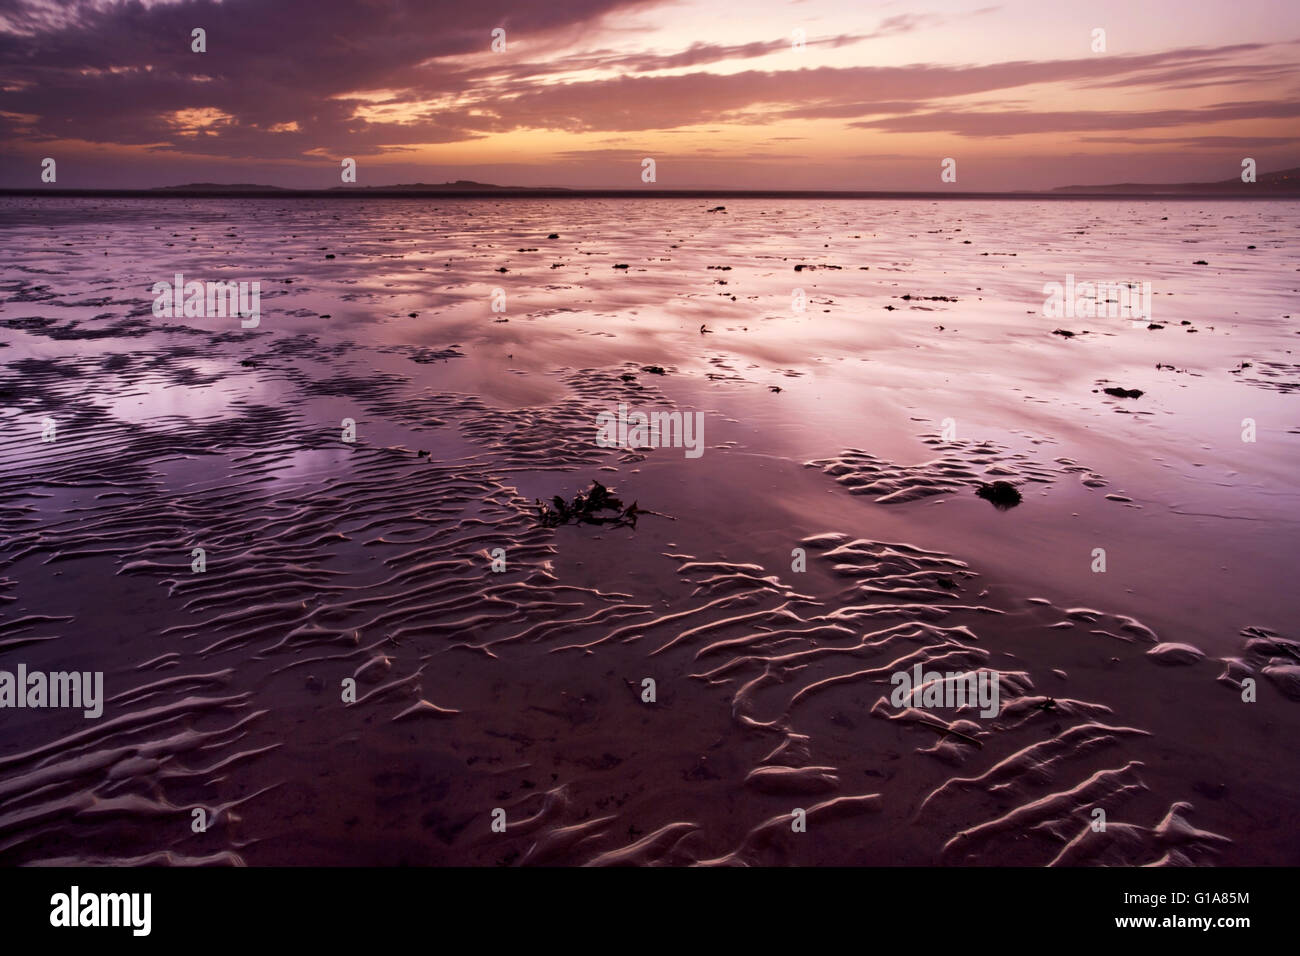 Carrick Shore at Sunset, Dumfries and Galloway, Scotland - Stock Image